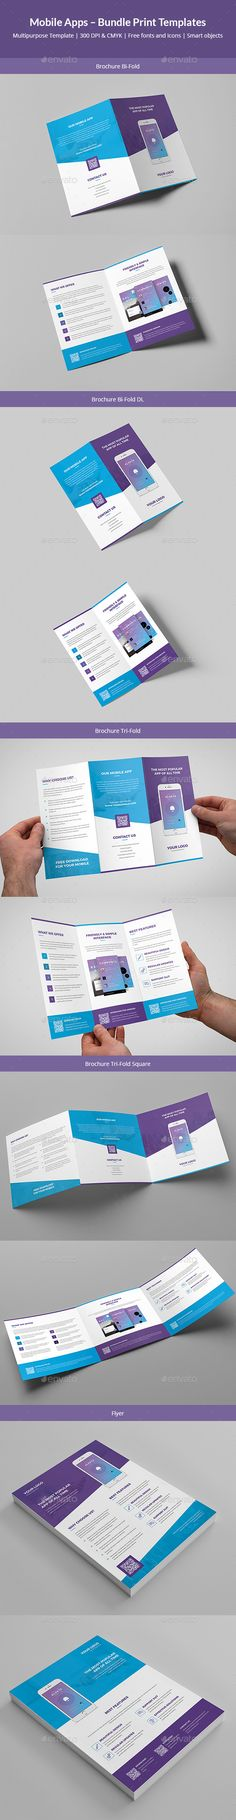 Mobile Apps – Bundle Print Templates